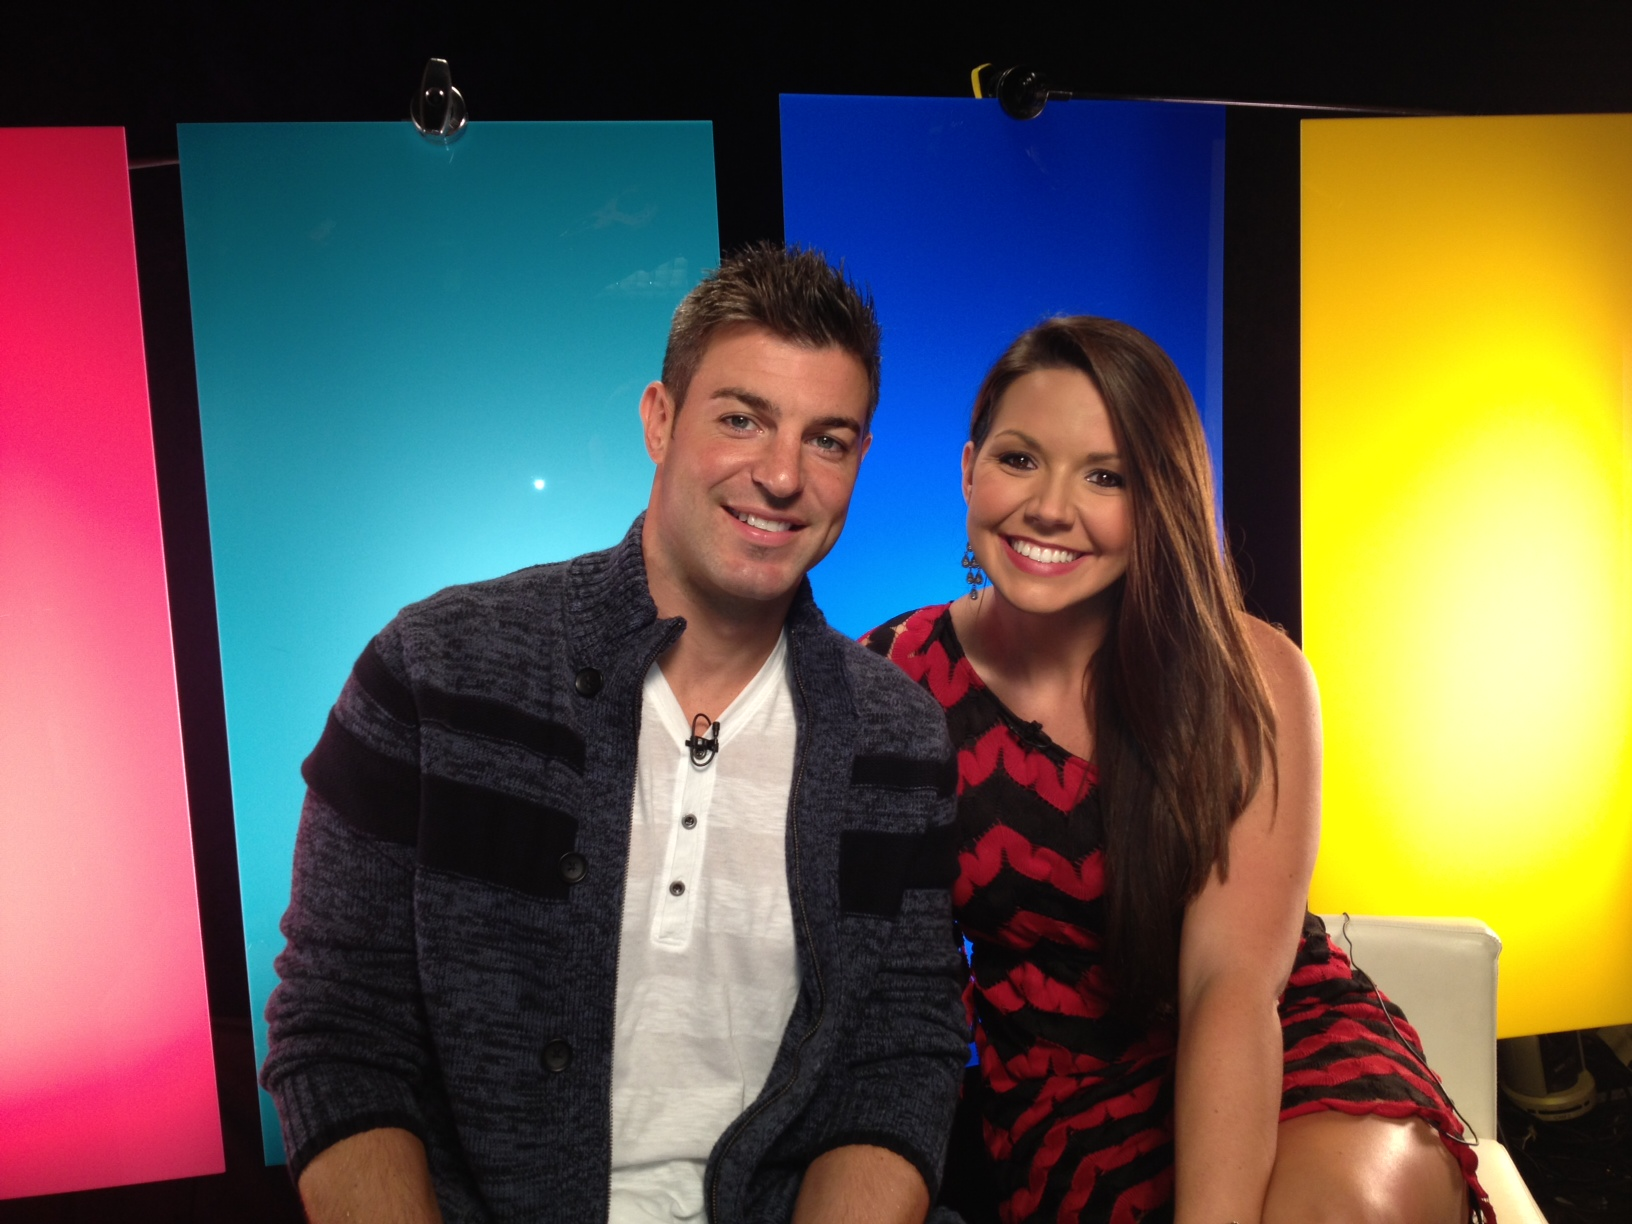 Jeff and Danielle